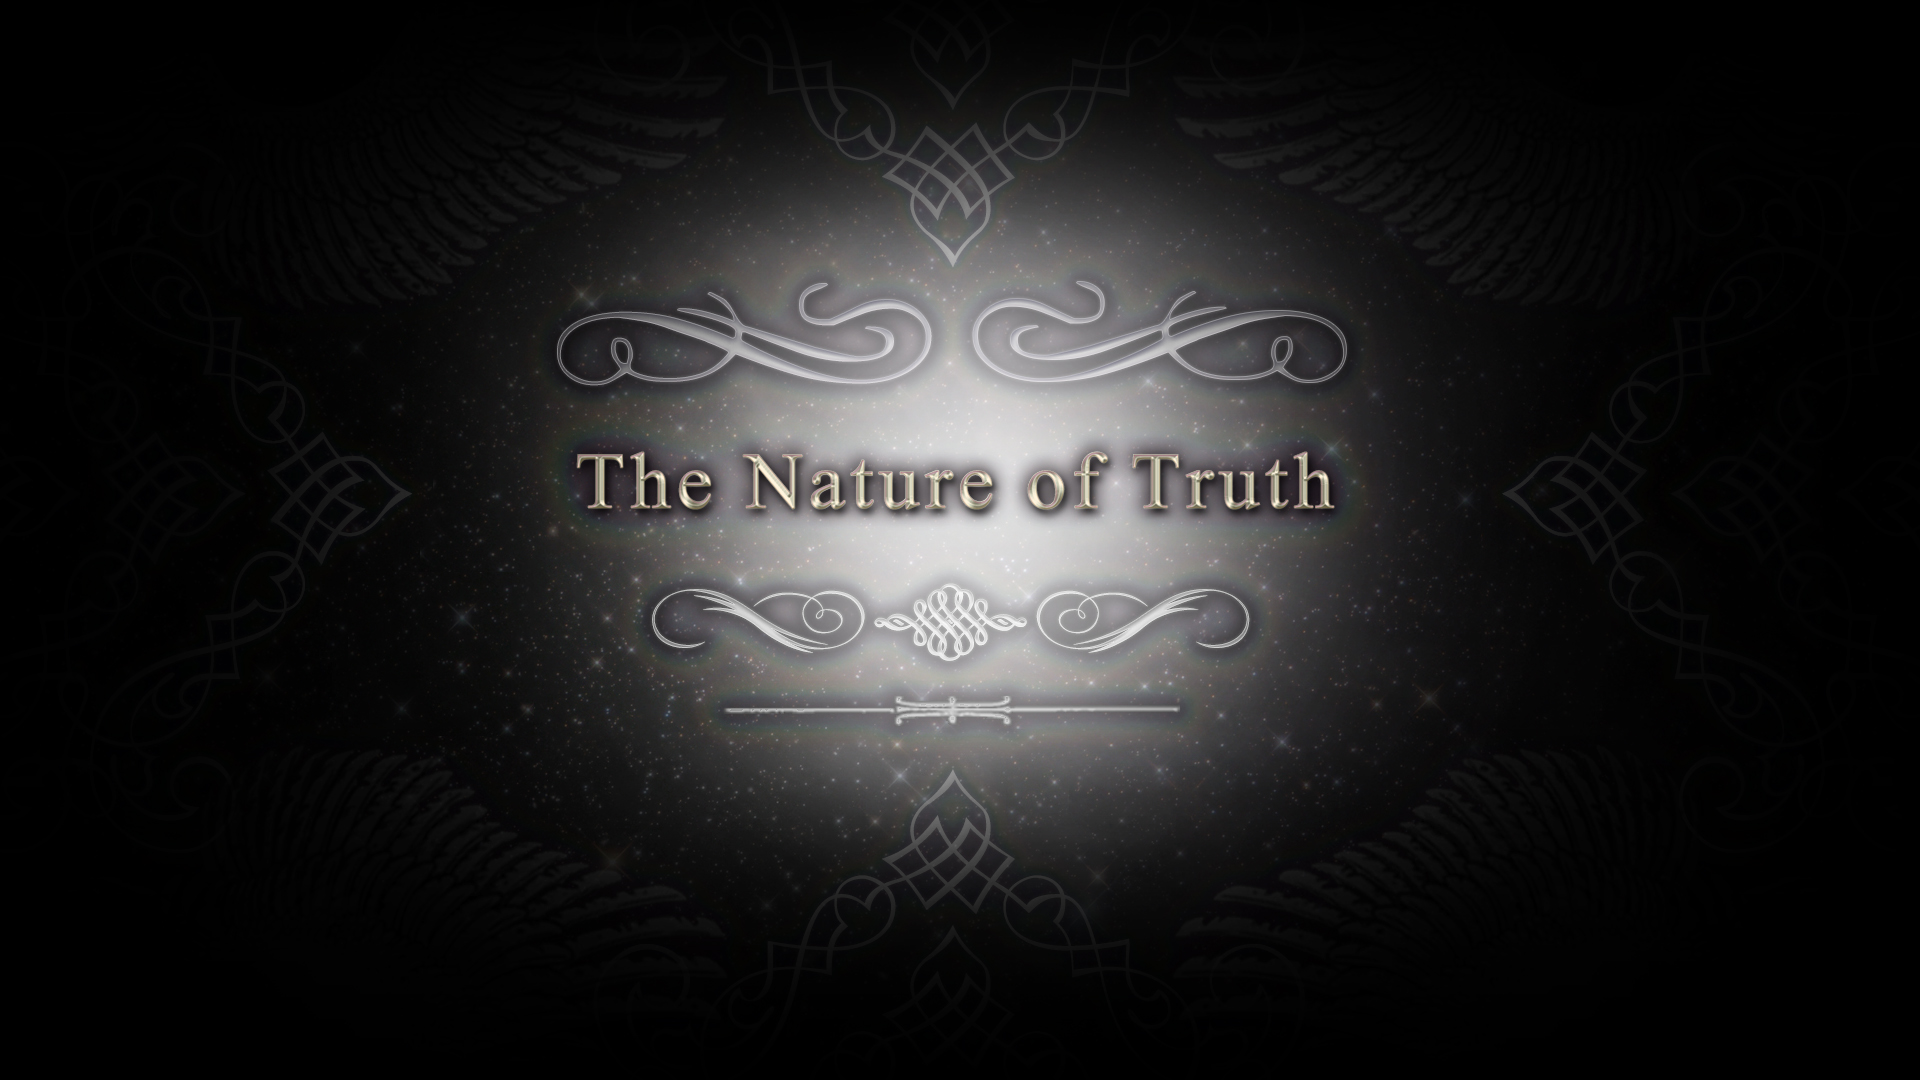 The Nature of Truth CM title